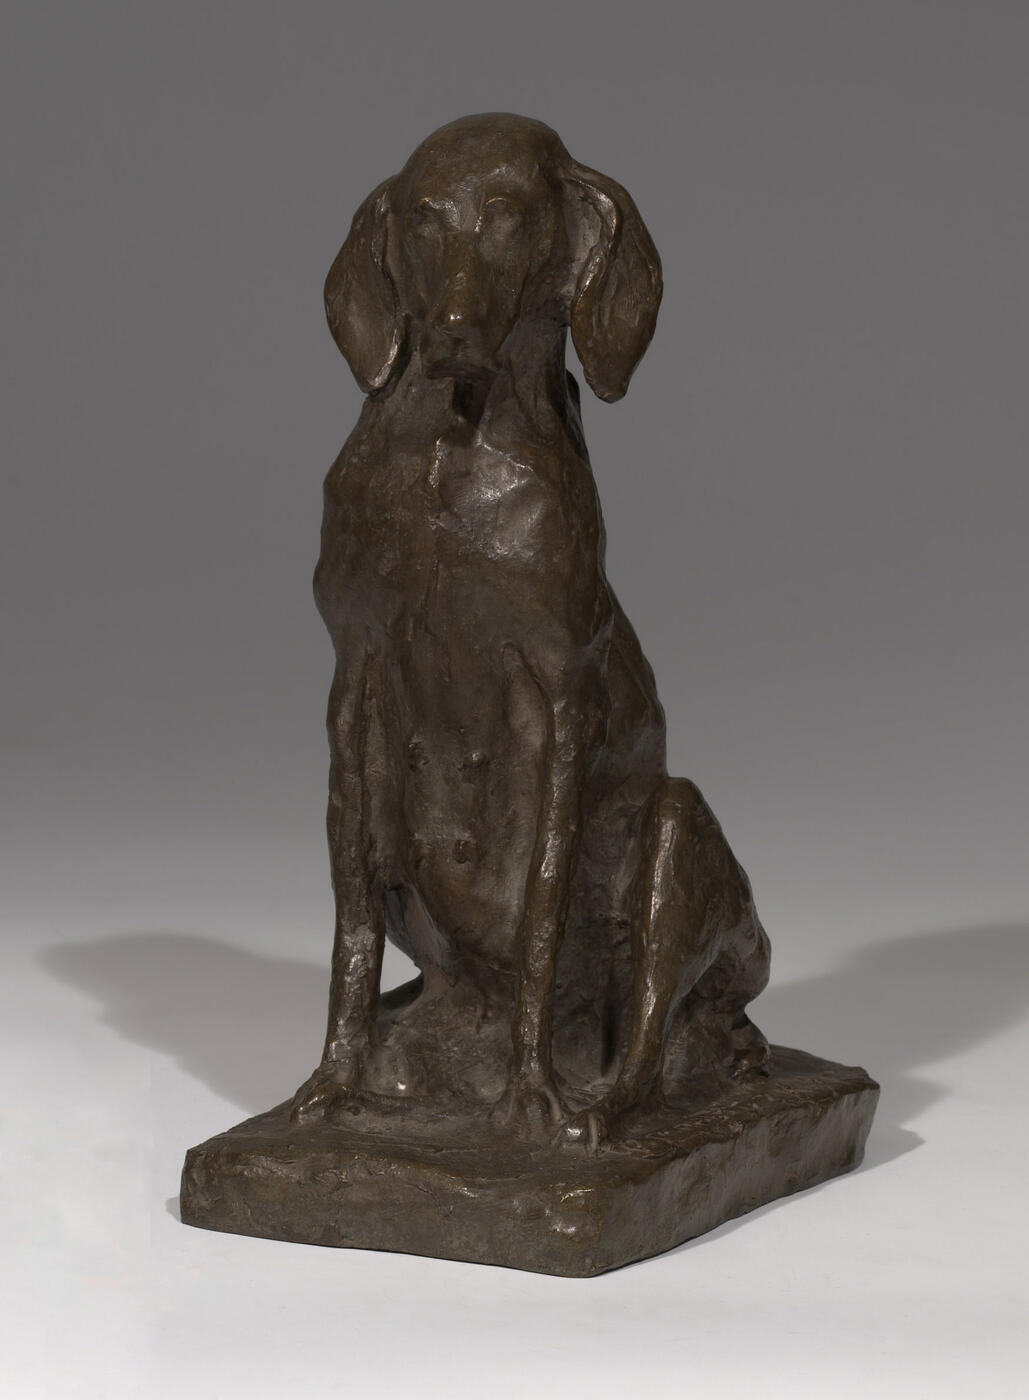 A Bronze model of a seated Dog